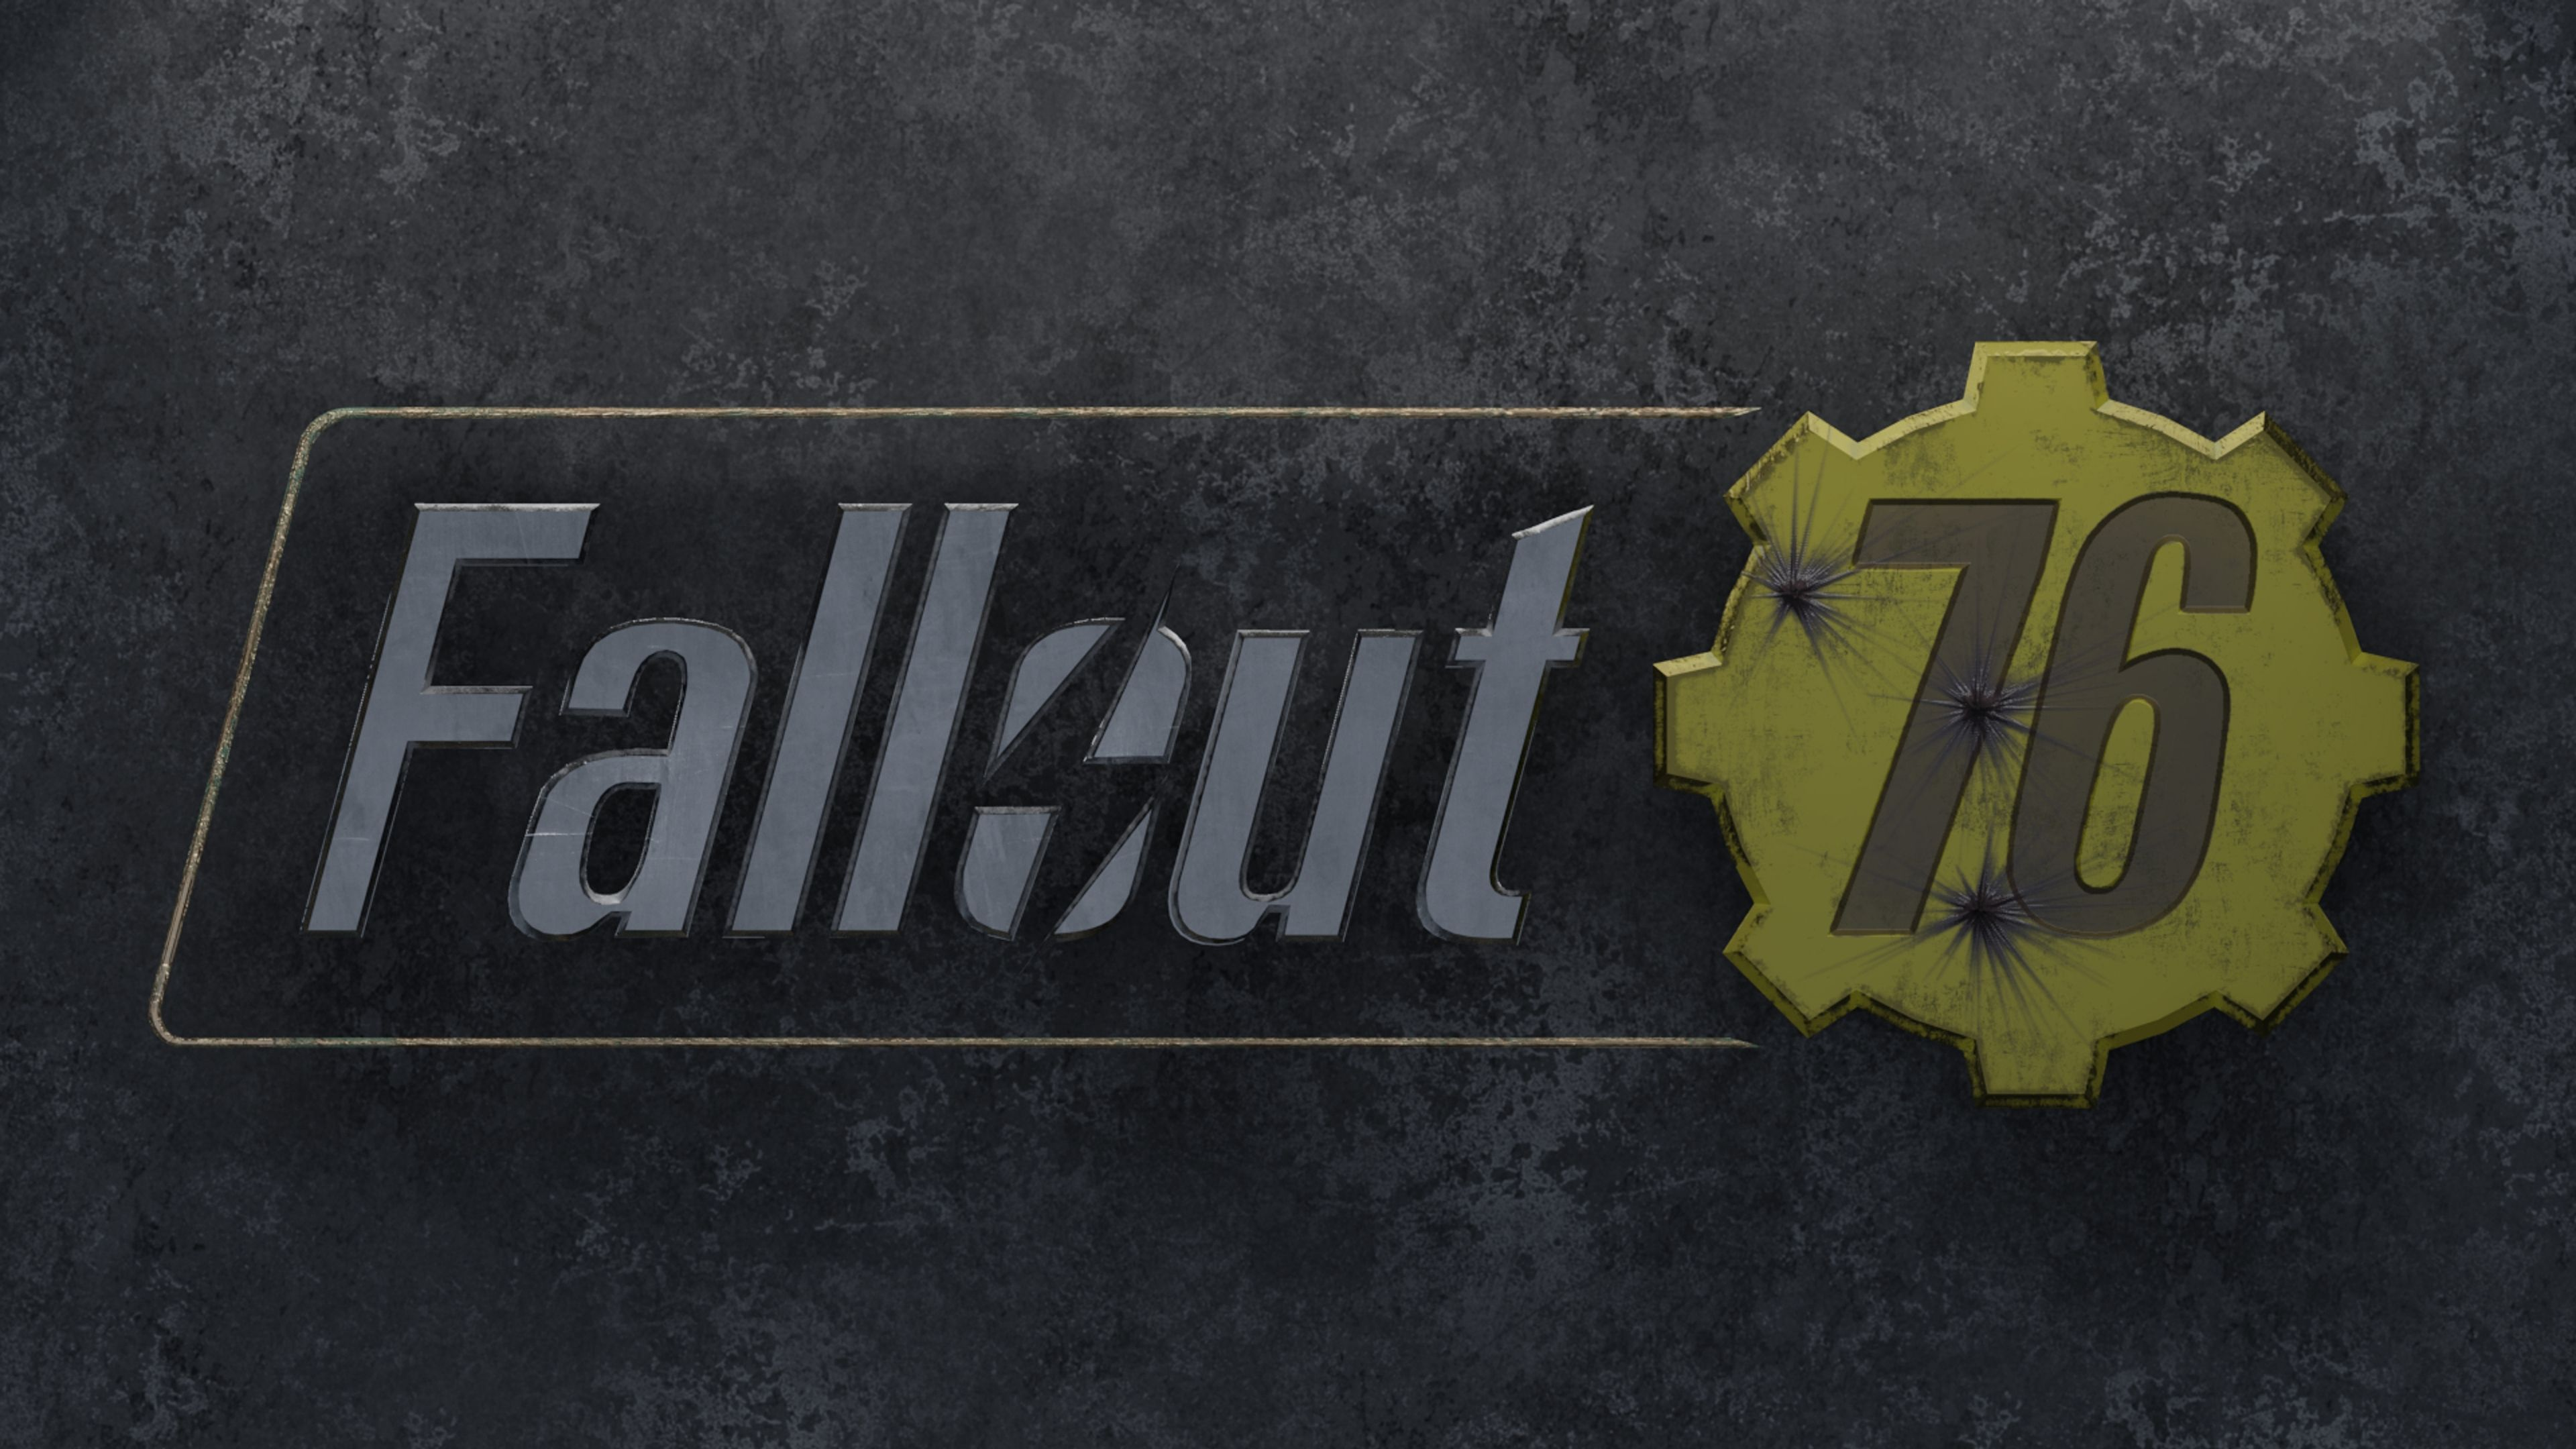 Found 29 Fallout 76 Wallpaper Tag Latest Post Is Fallout 76 Logo 4k Wallpaper Browse For More Hd 4k 8k Ultra Hd Resolution Fallout Wallpaper Hd Wallpaper